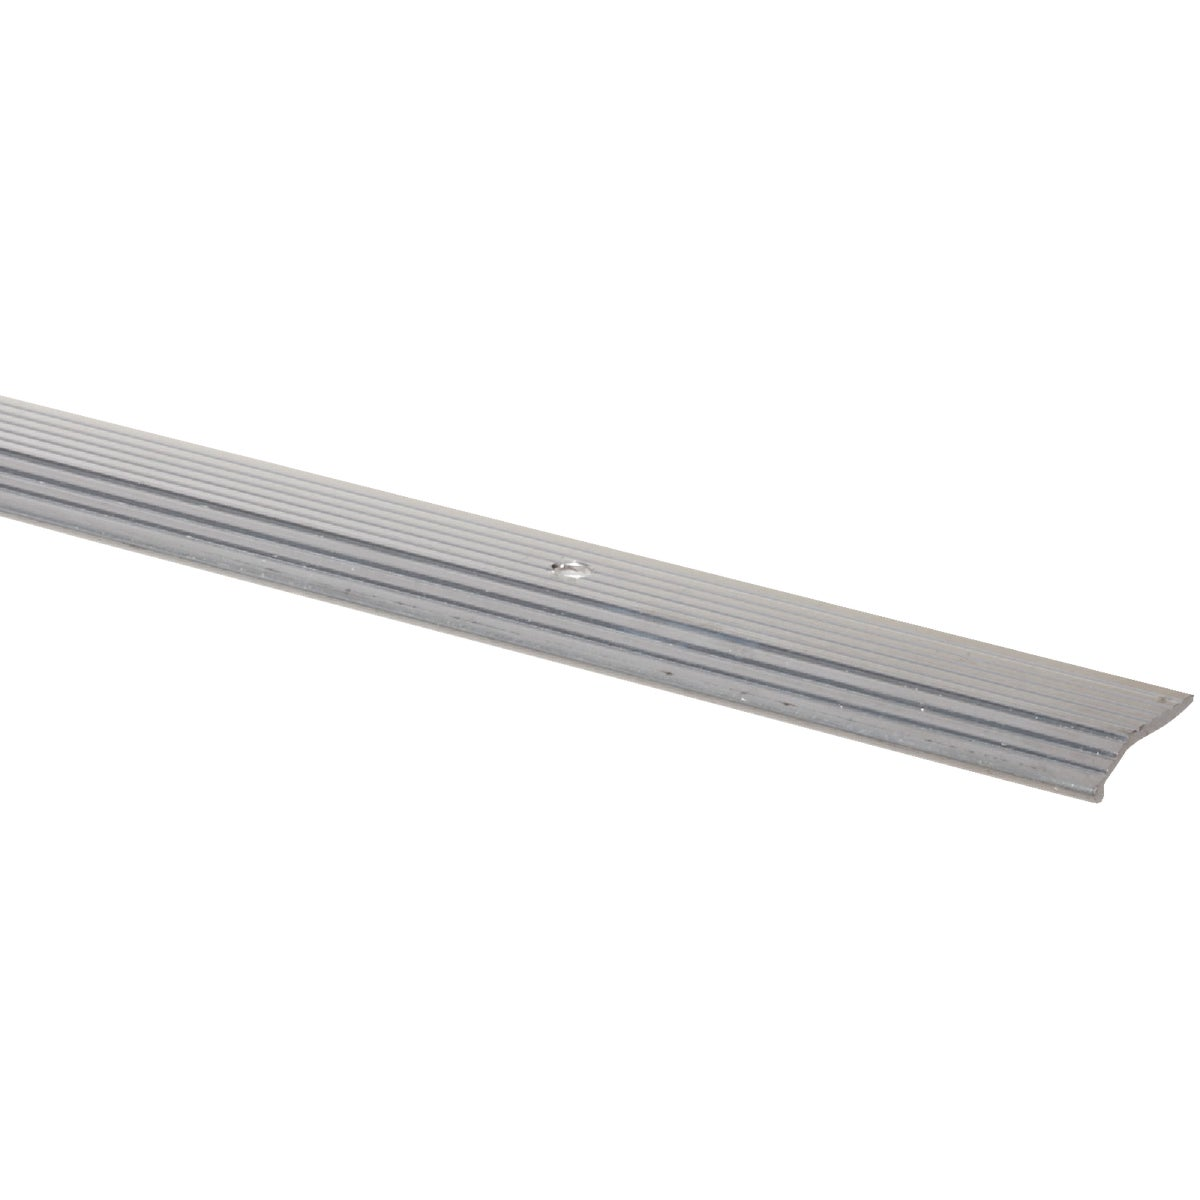 "3/4""X6' SLVR EDGING - 78113 by M D Building Prod"